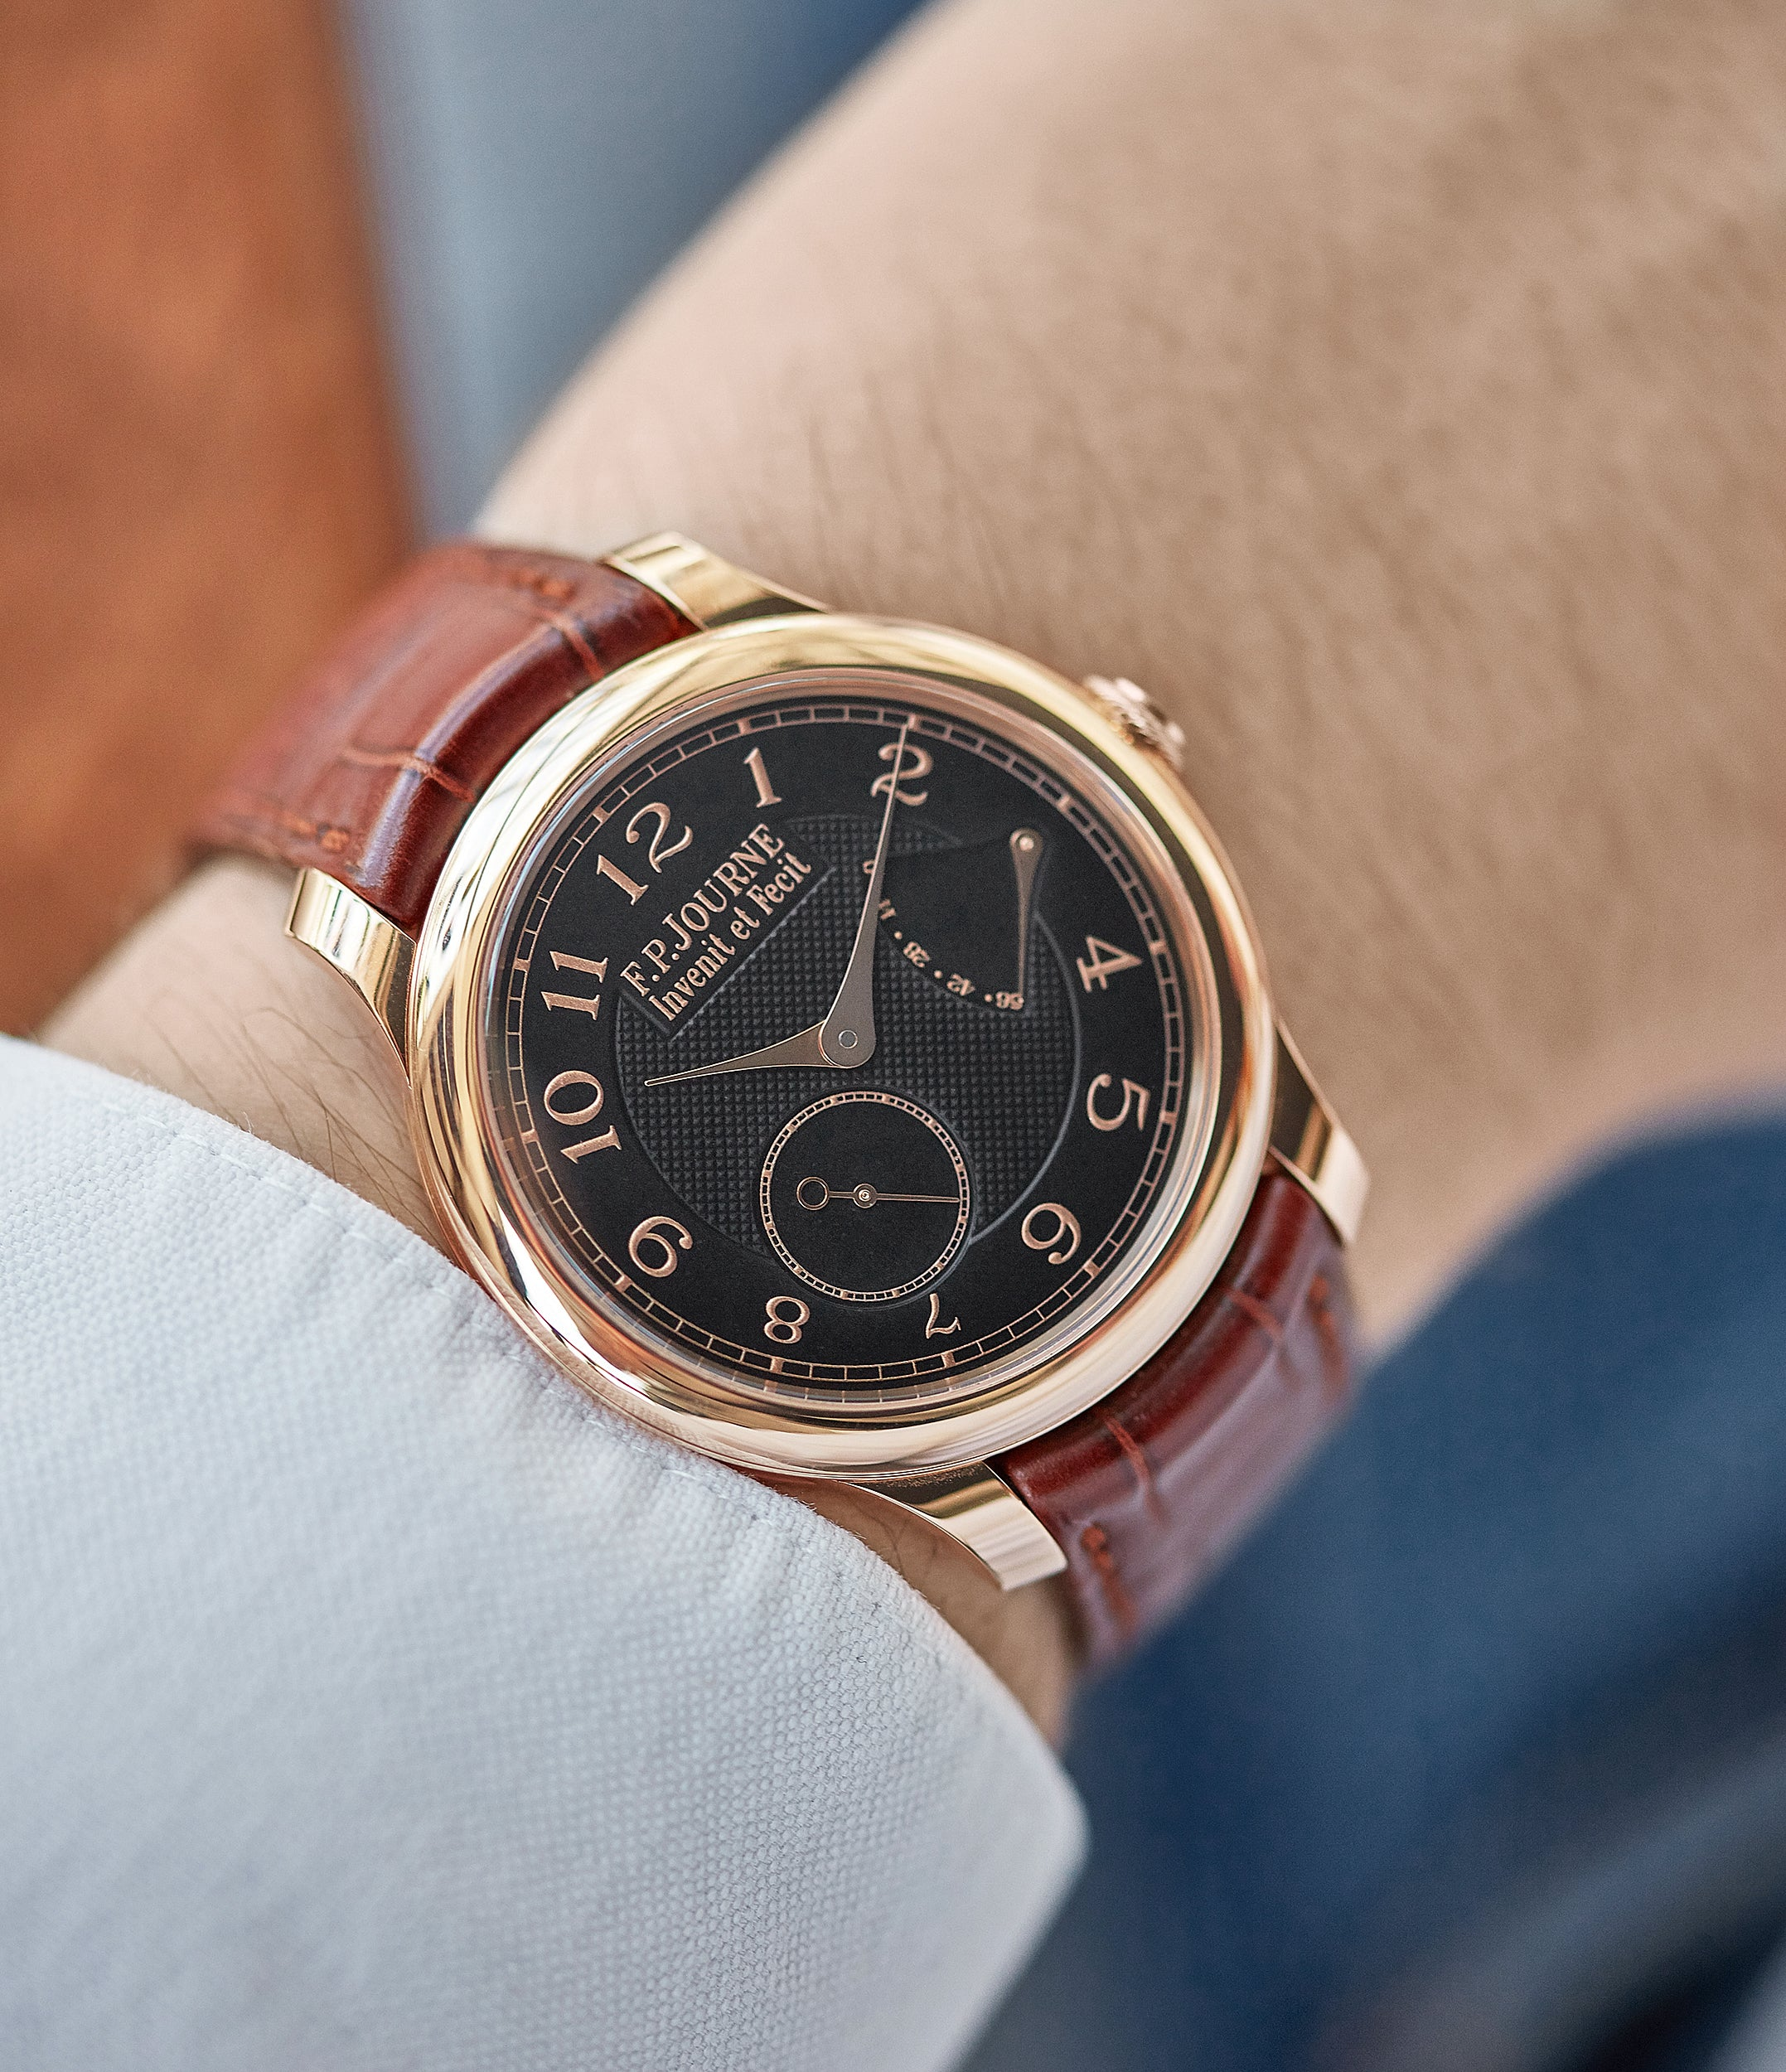 men's dress watch Boutique Edition Journe Chronometre Souverain red gold black dial rare watch independent watchmaker for sale online at A Collected Man London UK specialist of rare watches